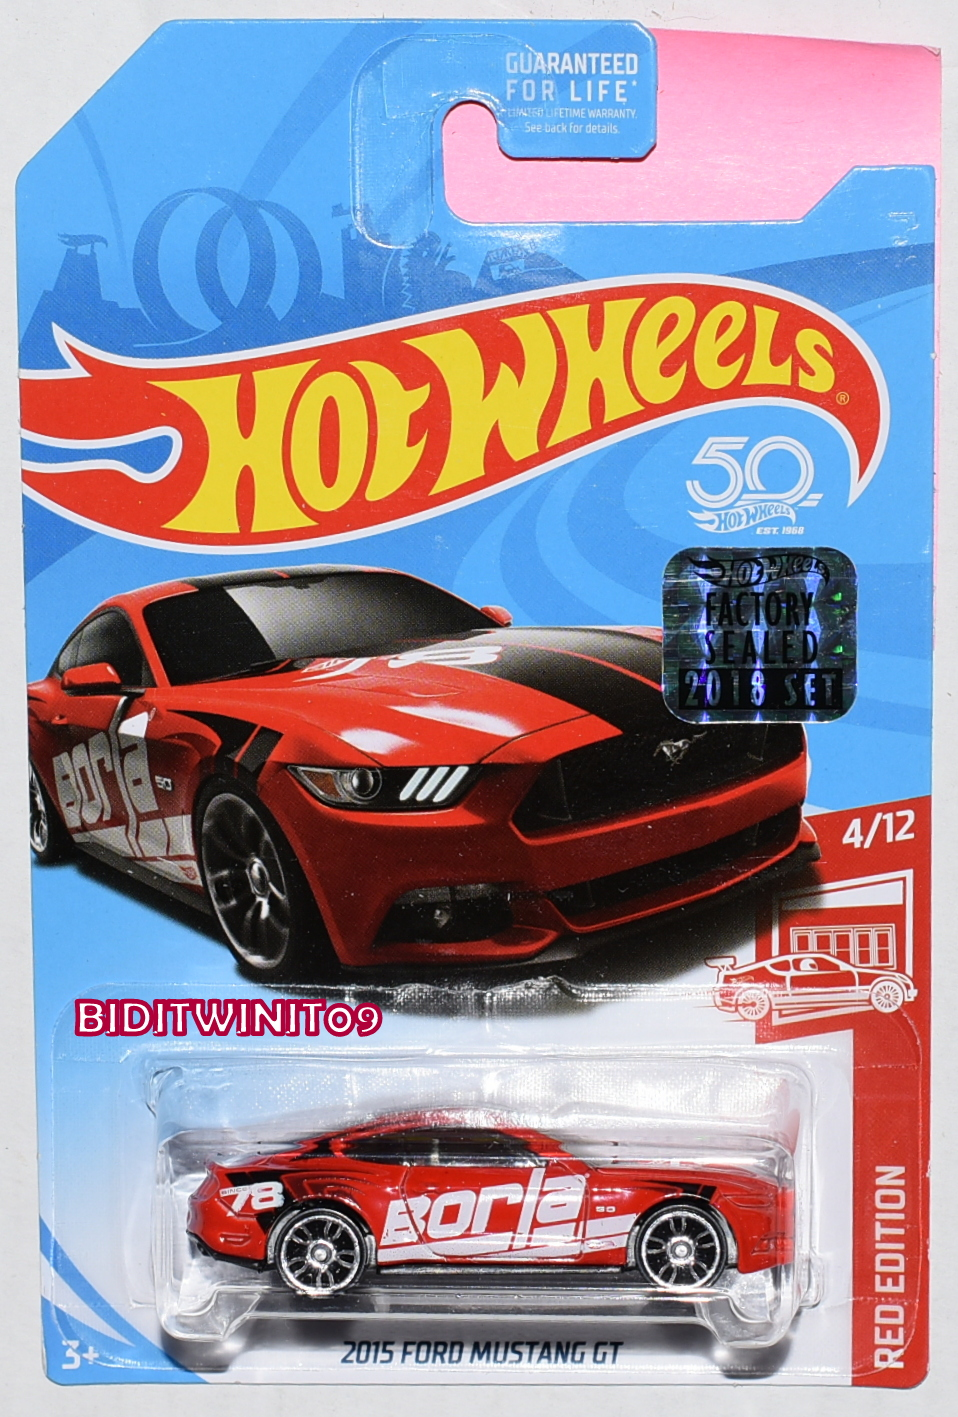 HOT WHEELS 2018 RED EDITION 2015 FORD MUSTANG GT TARGET EXCLUSIVE